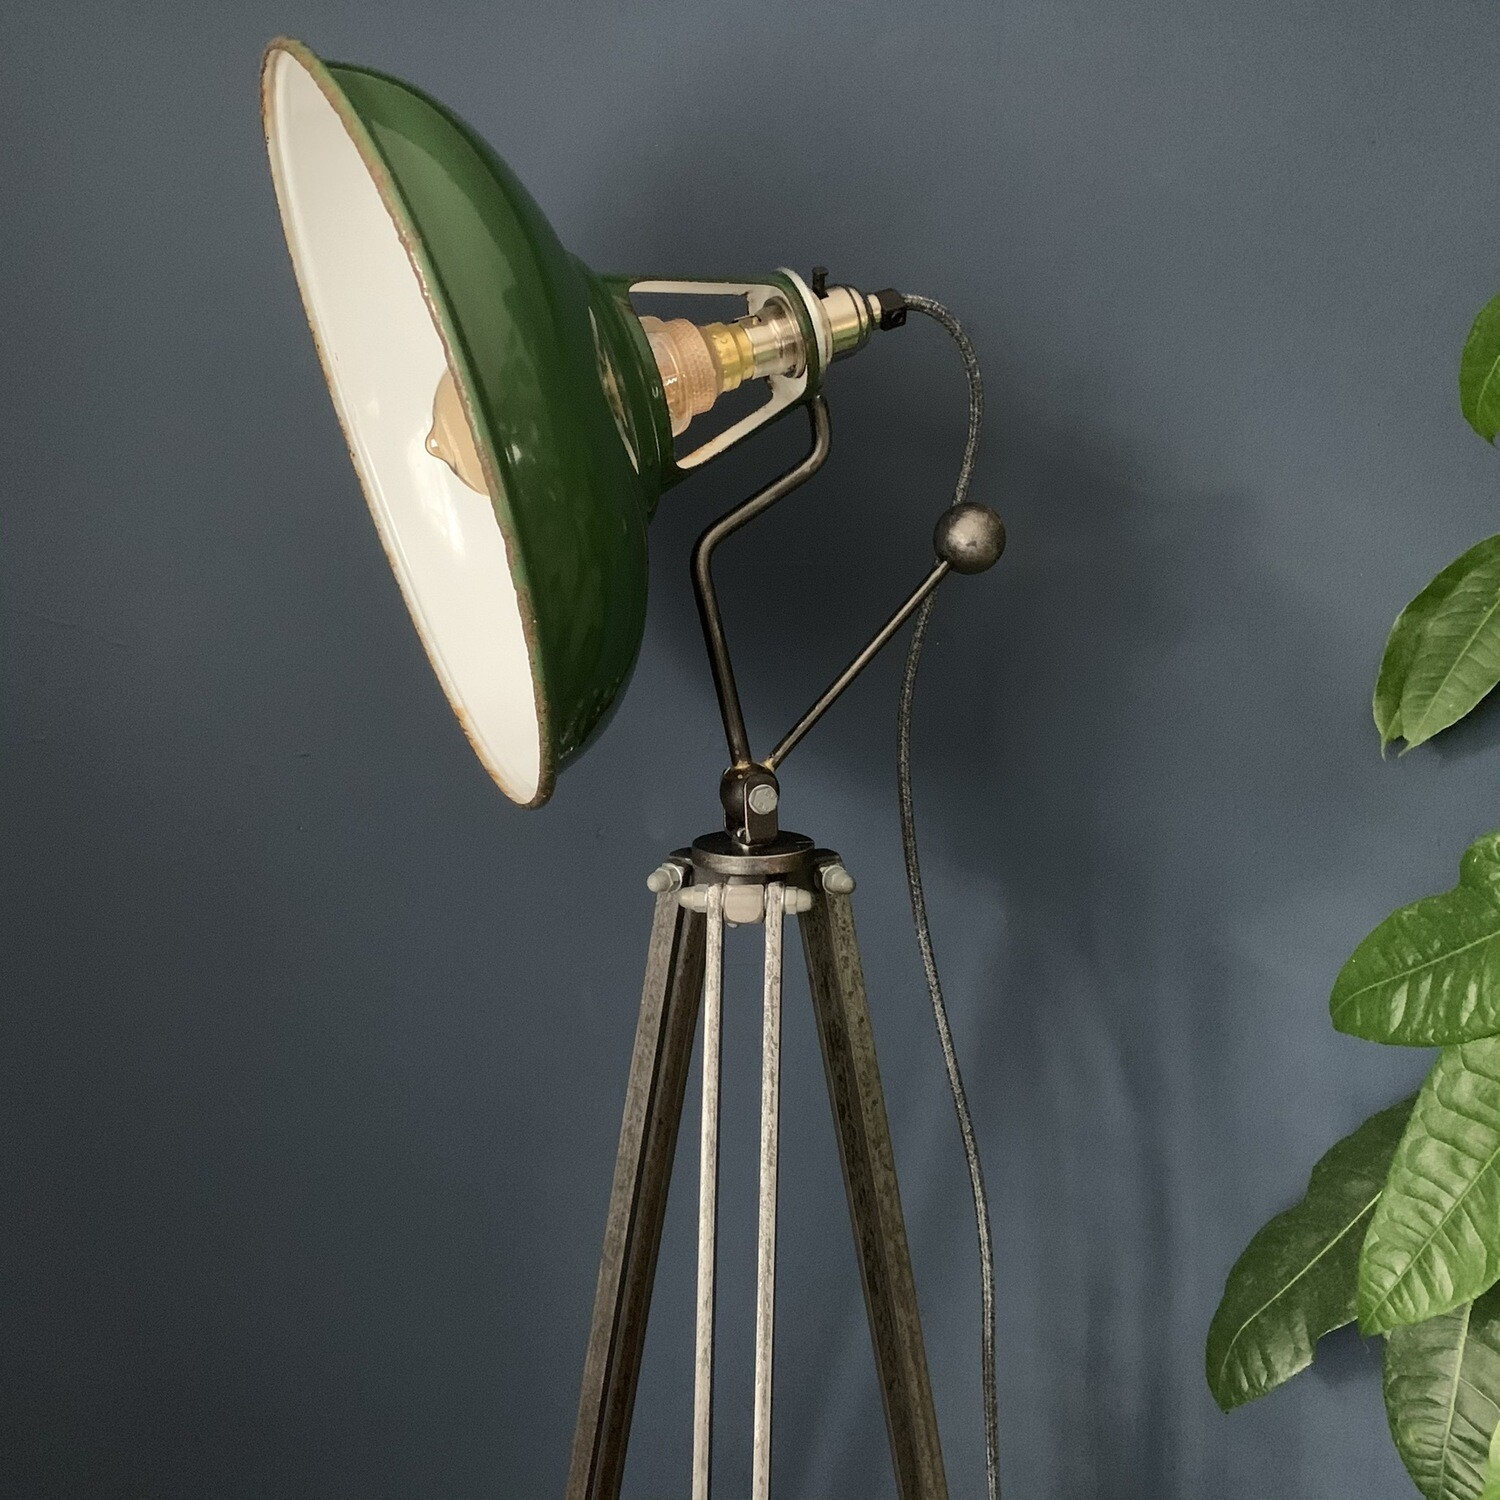 Vintage Enamel Coolicon Shade On Handmade Steel Pan/tilt Neck And Tripod